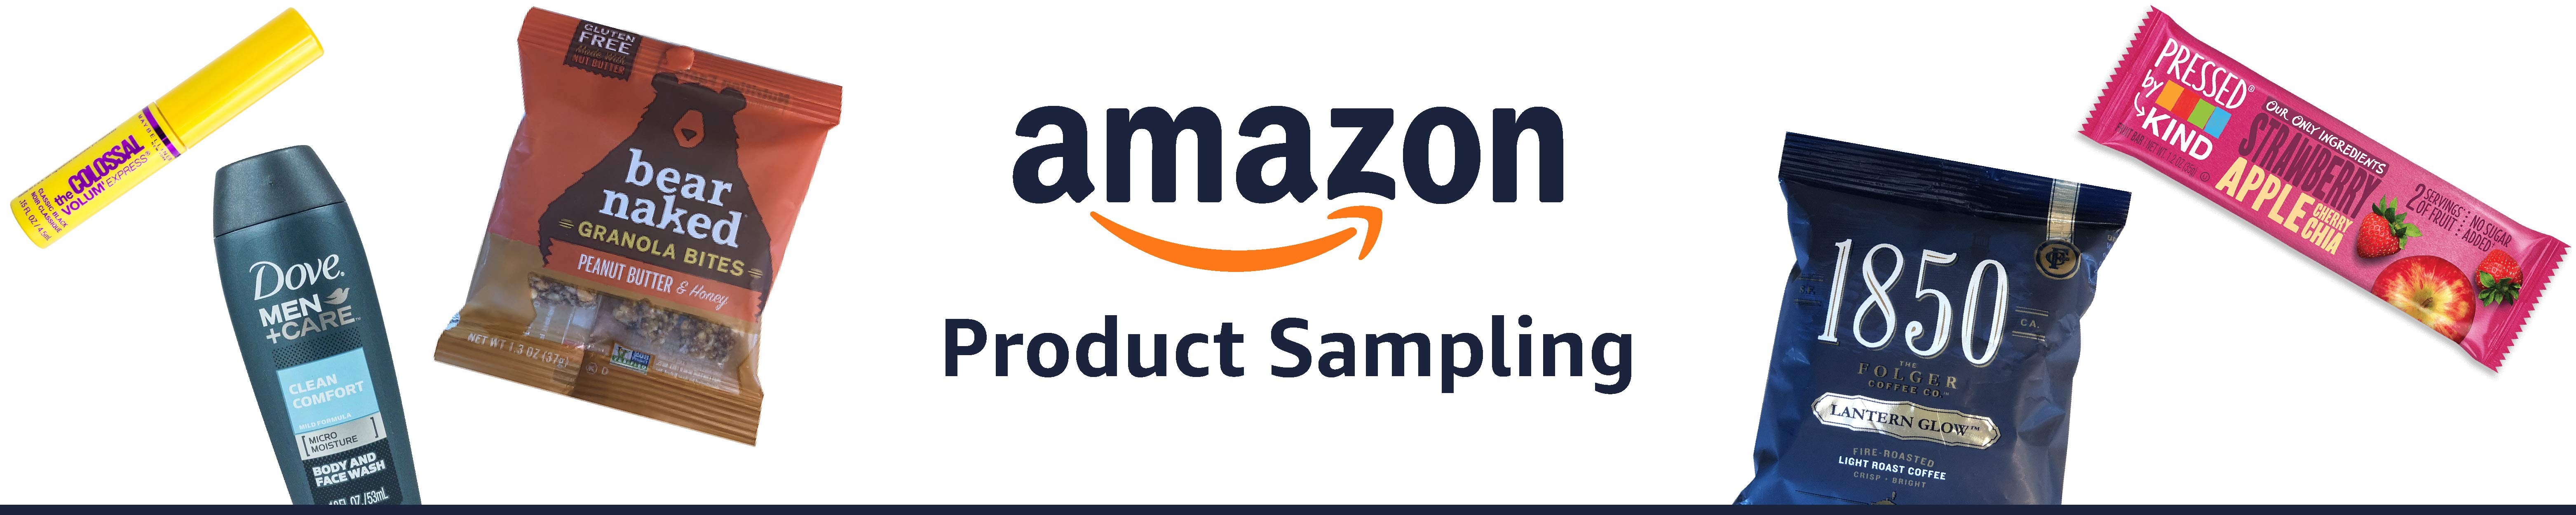 How to Get Free Product Samples from Amazon.com